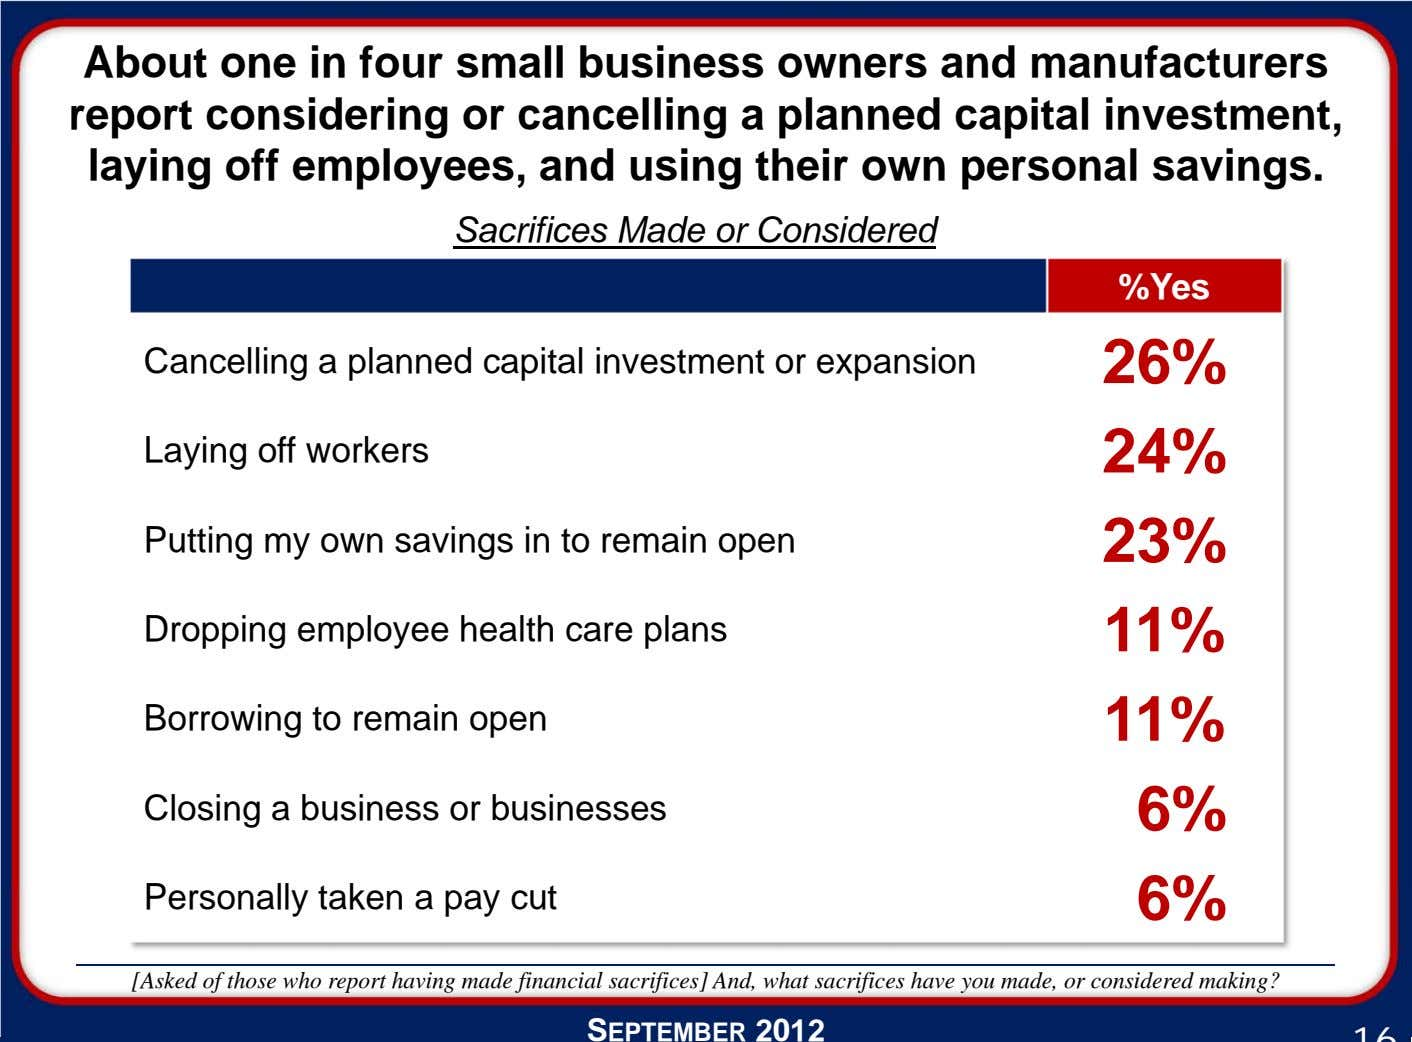 About one in four small business owners and manufacturers report considering or cancelling a planned